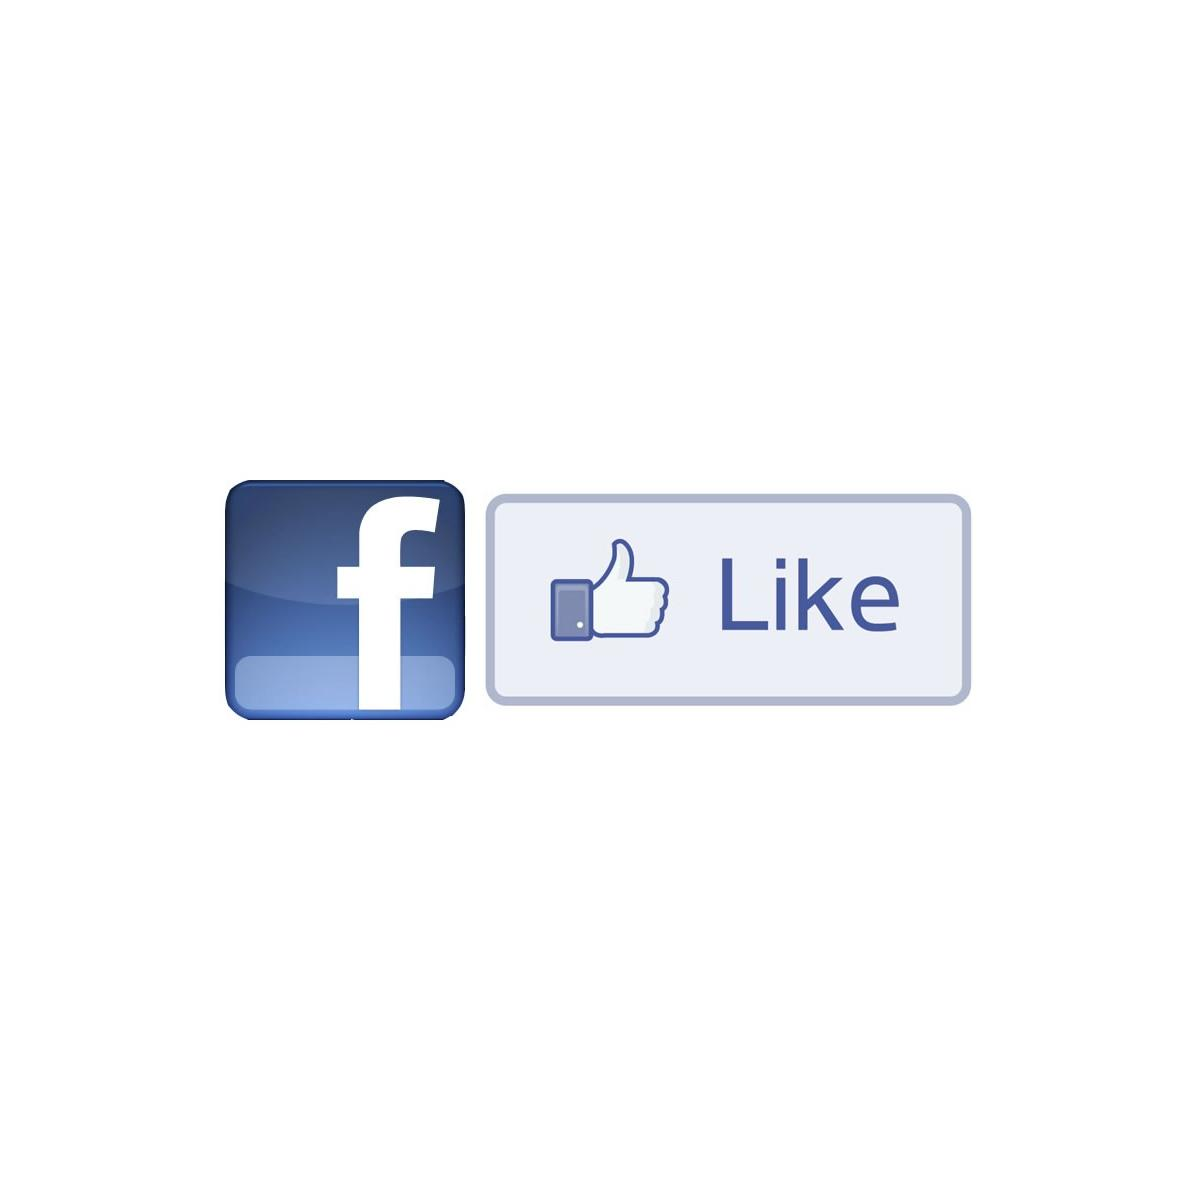 facebook account not verified freemyapps code